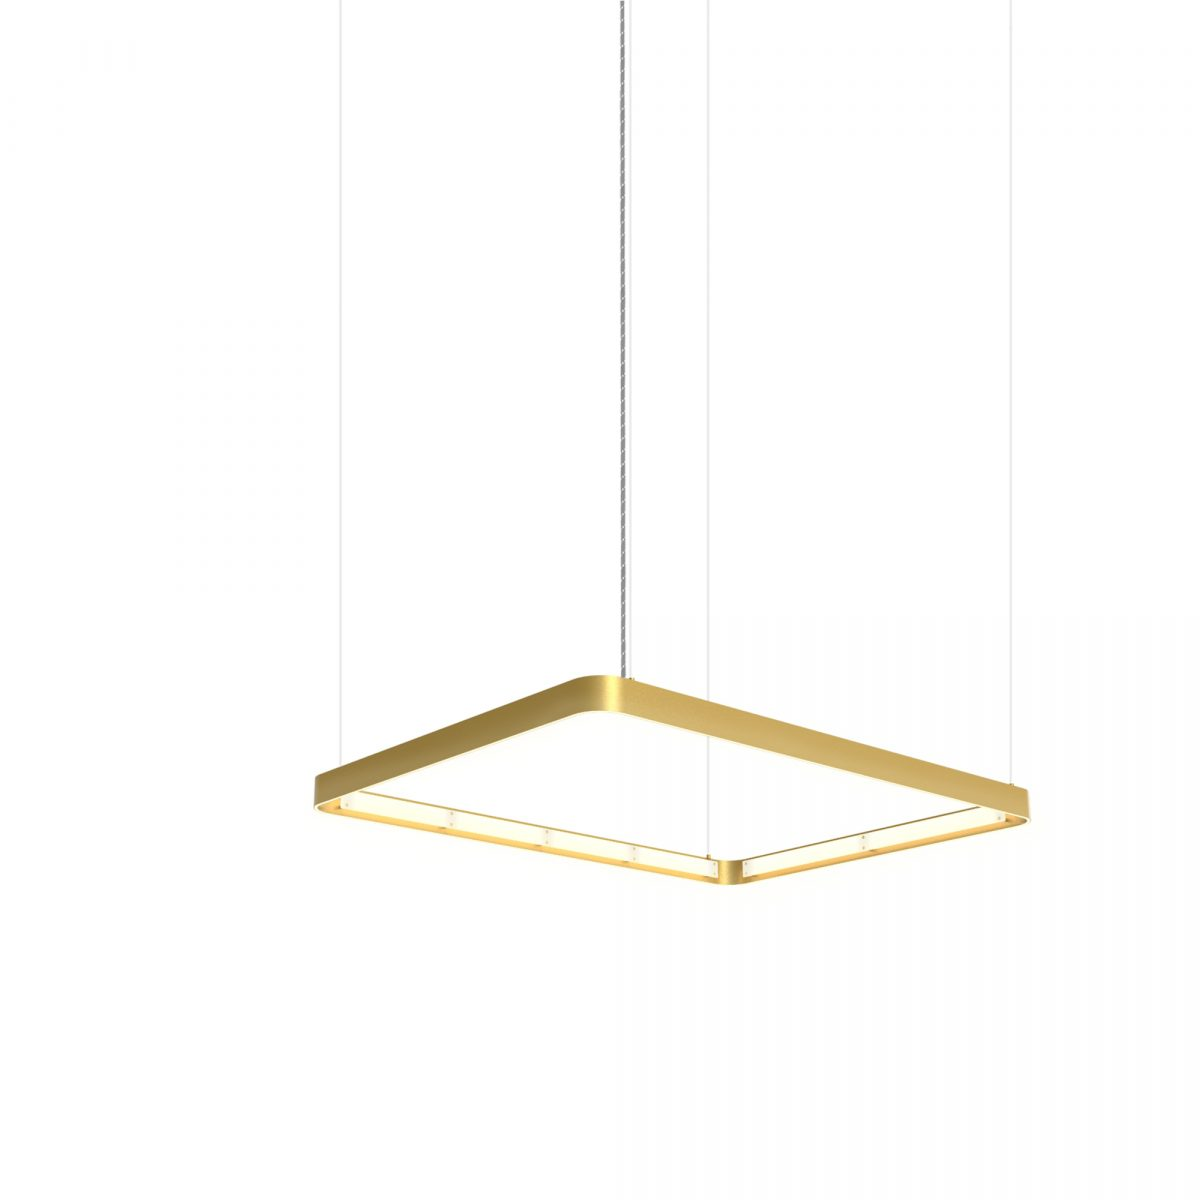 JSPR Eden Deco 75×100 Gold Rectangle